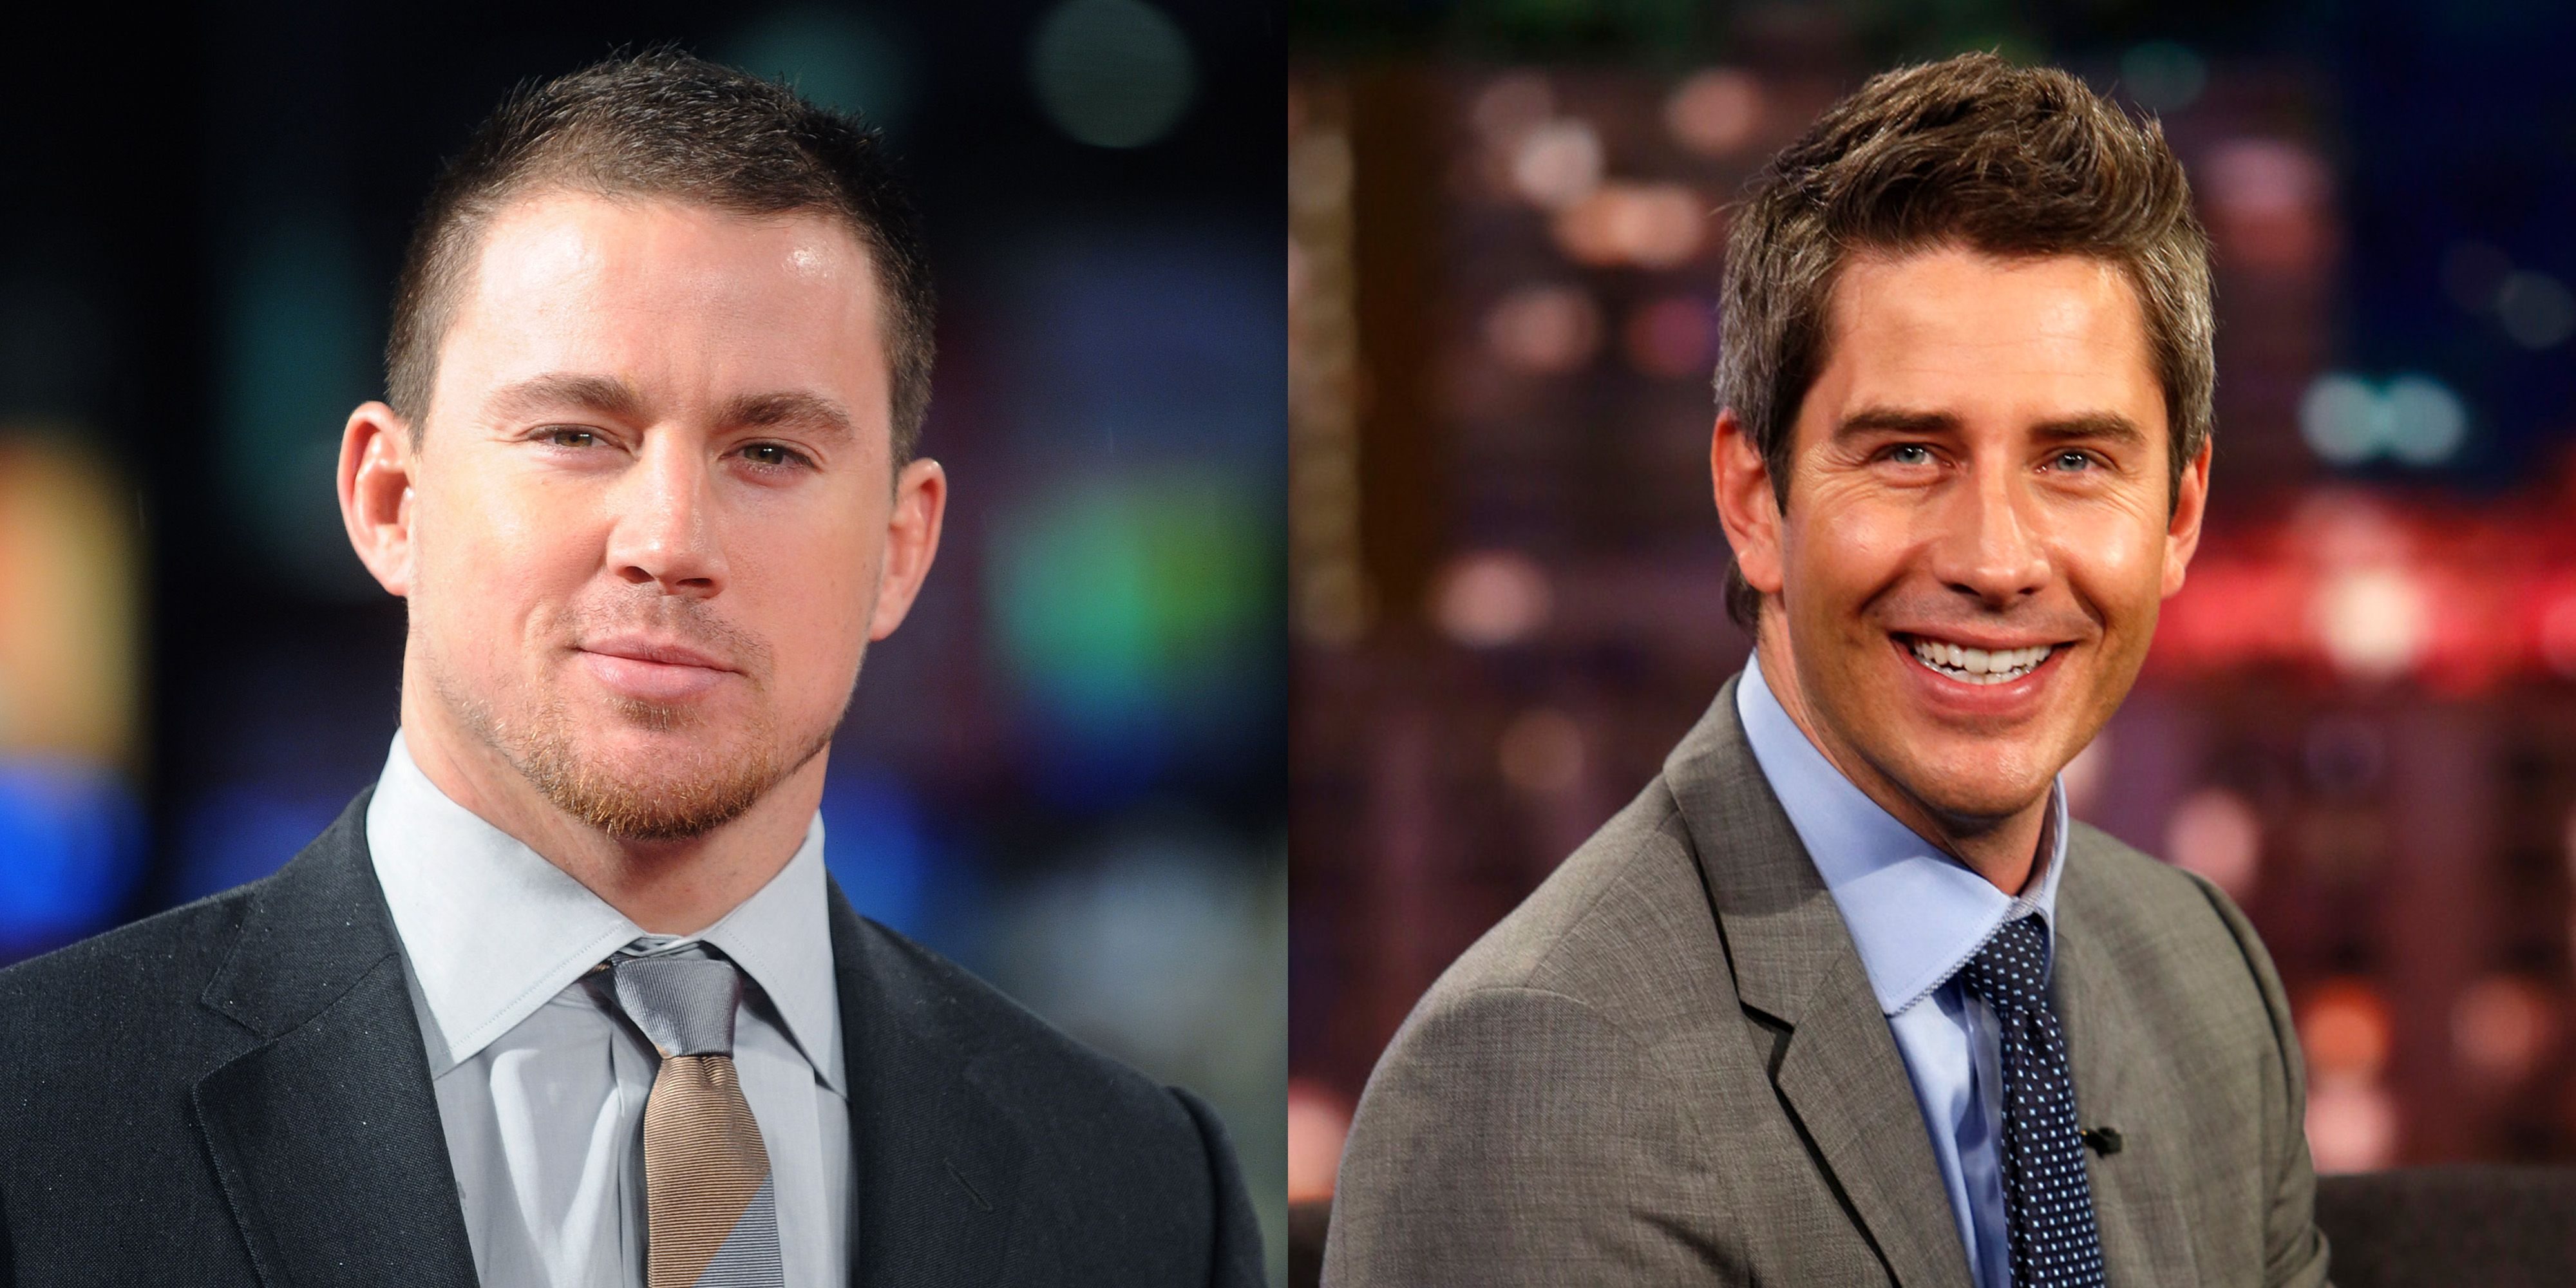 Bachelor Arie Luyendyk Jr. Meets Channing Tatum at the Race Track